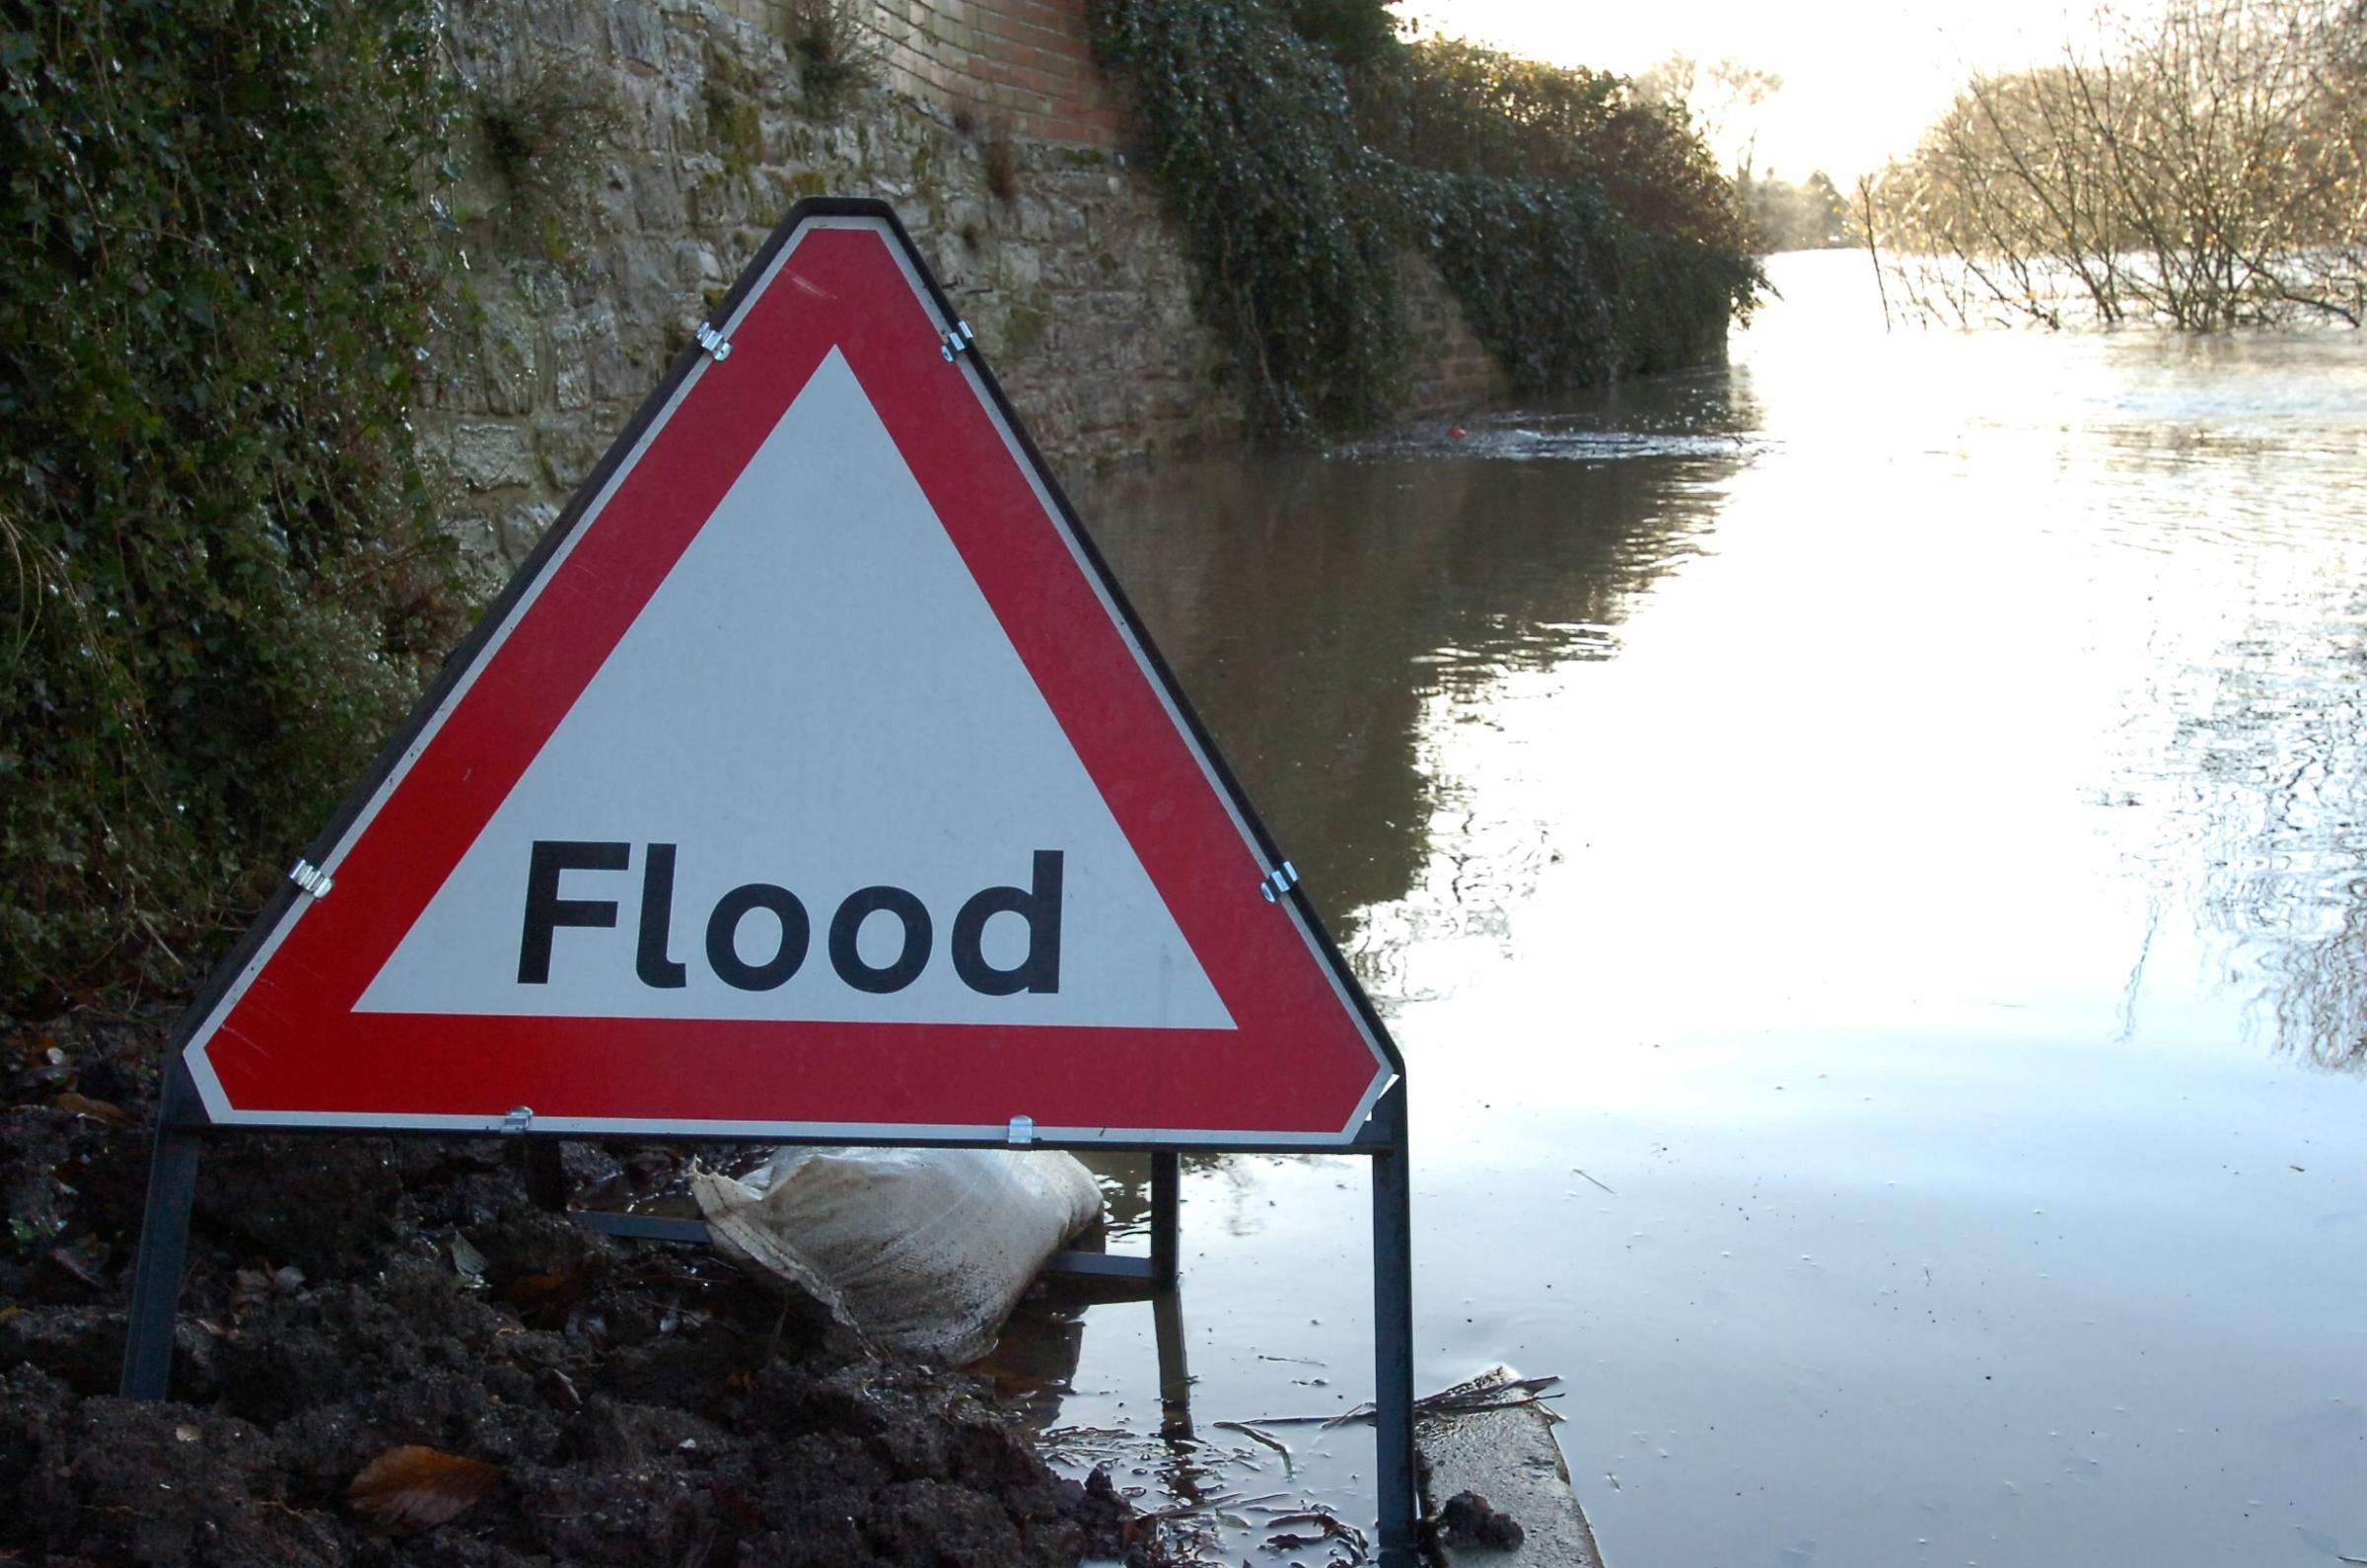 Experts have said a number of areas in Renfrewshire and East Renfrewshire are prone to flooding